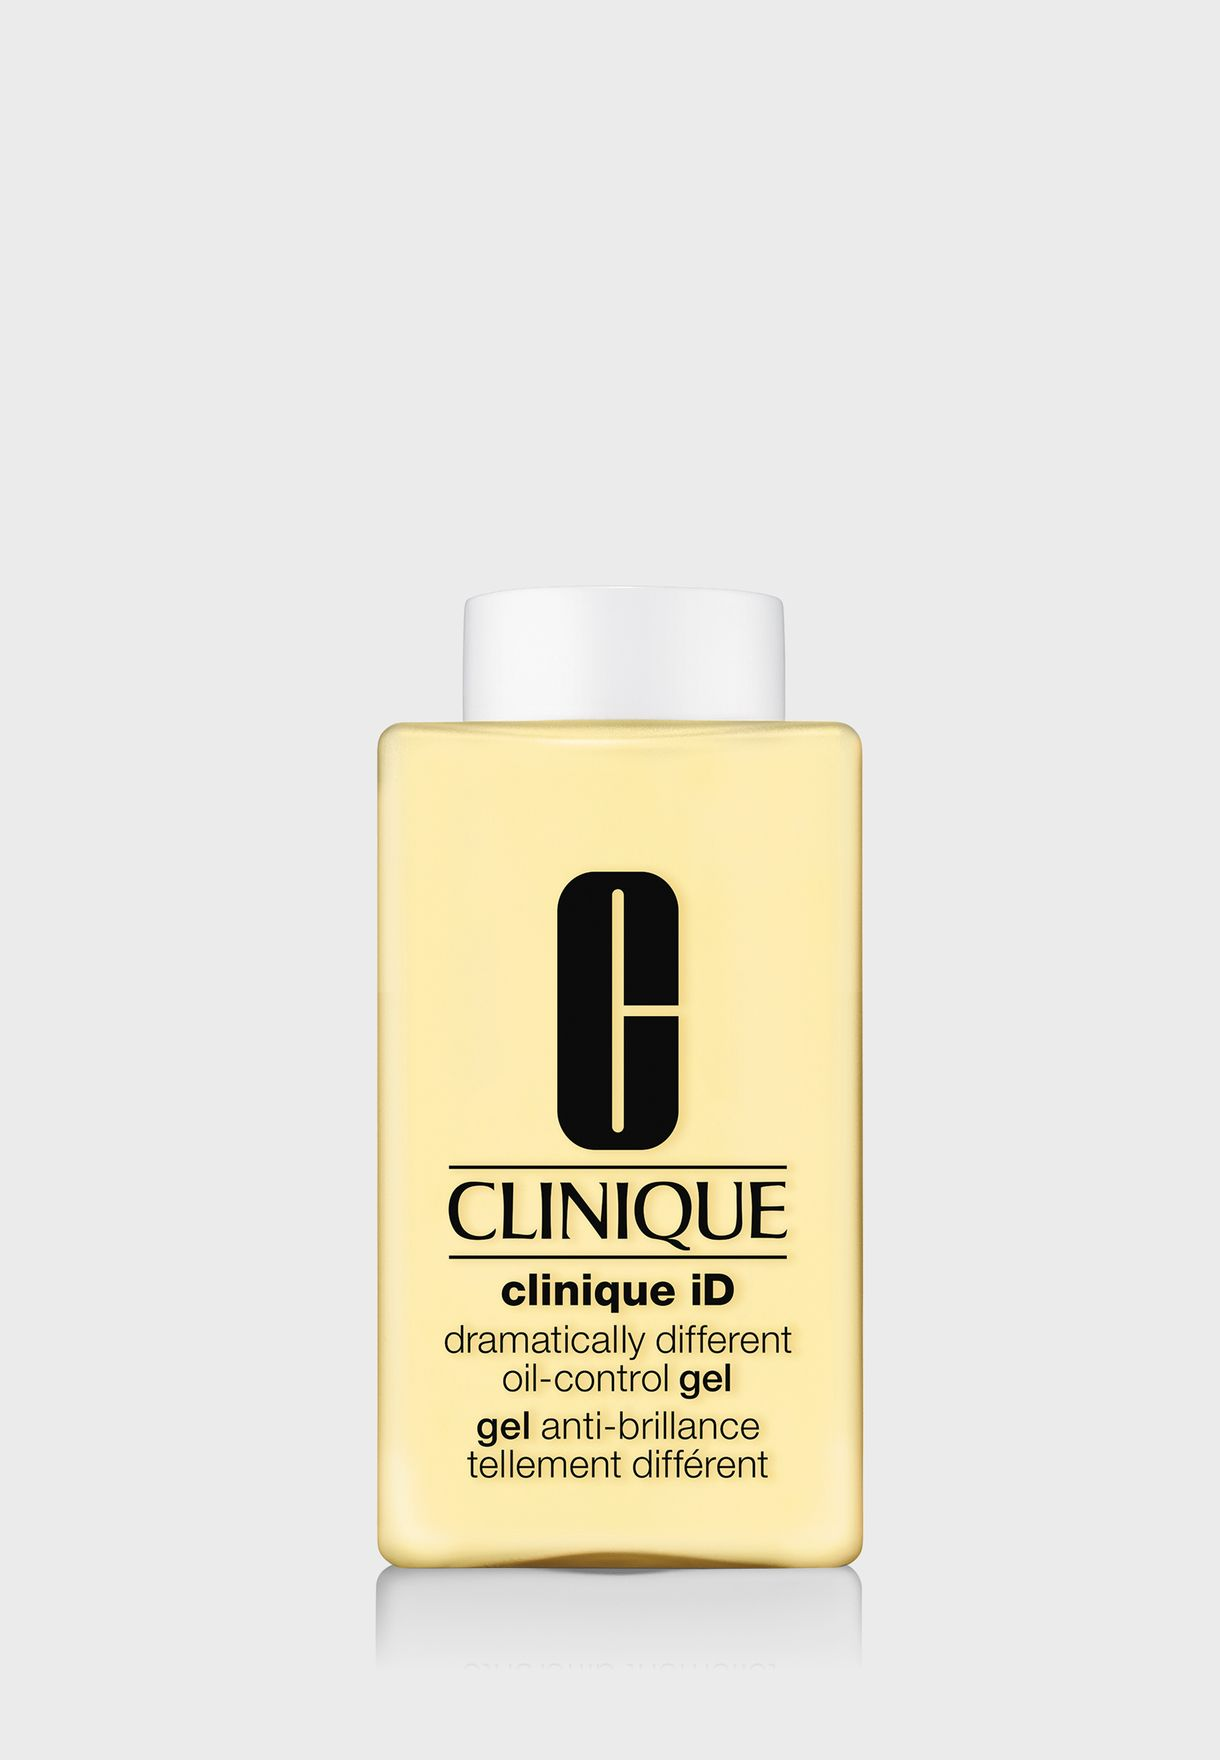 Clinique ID Oil-control Gel for Pores